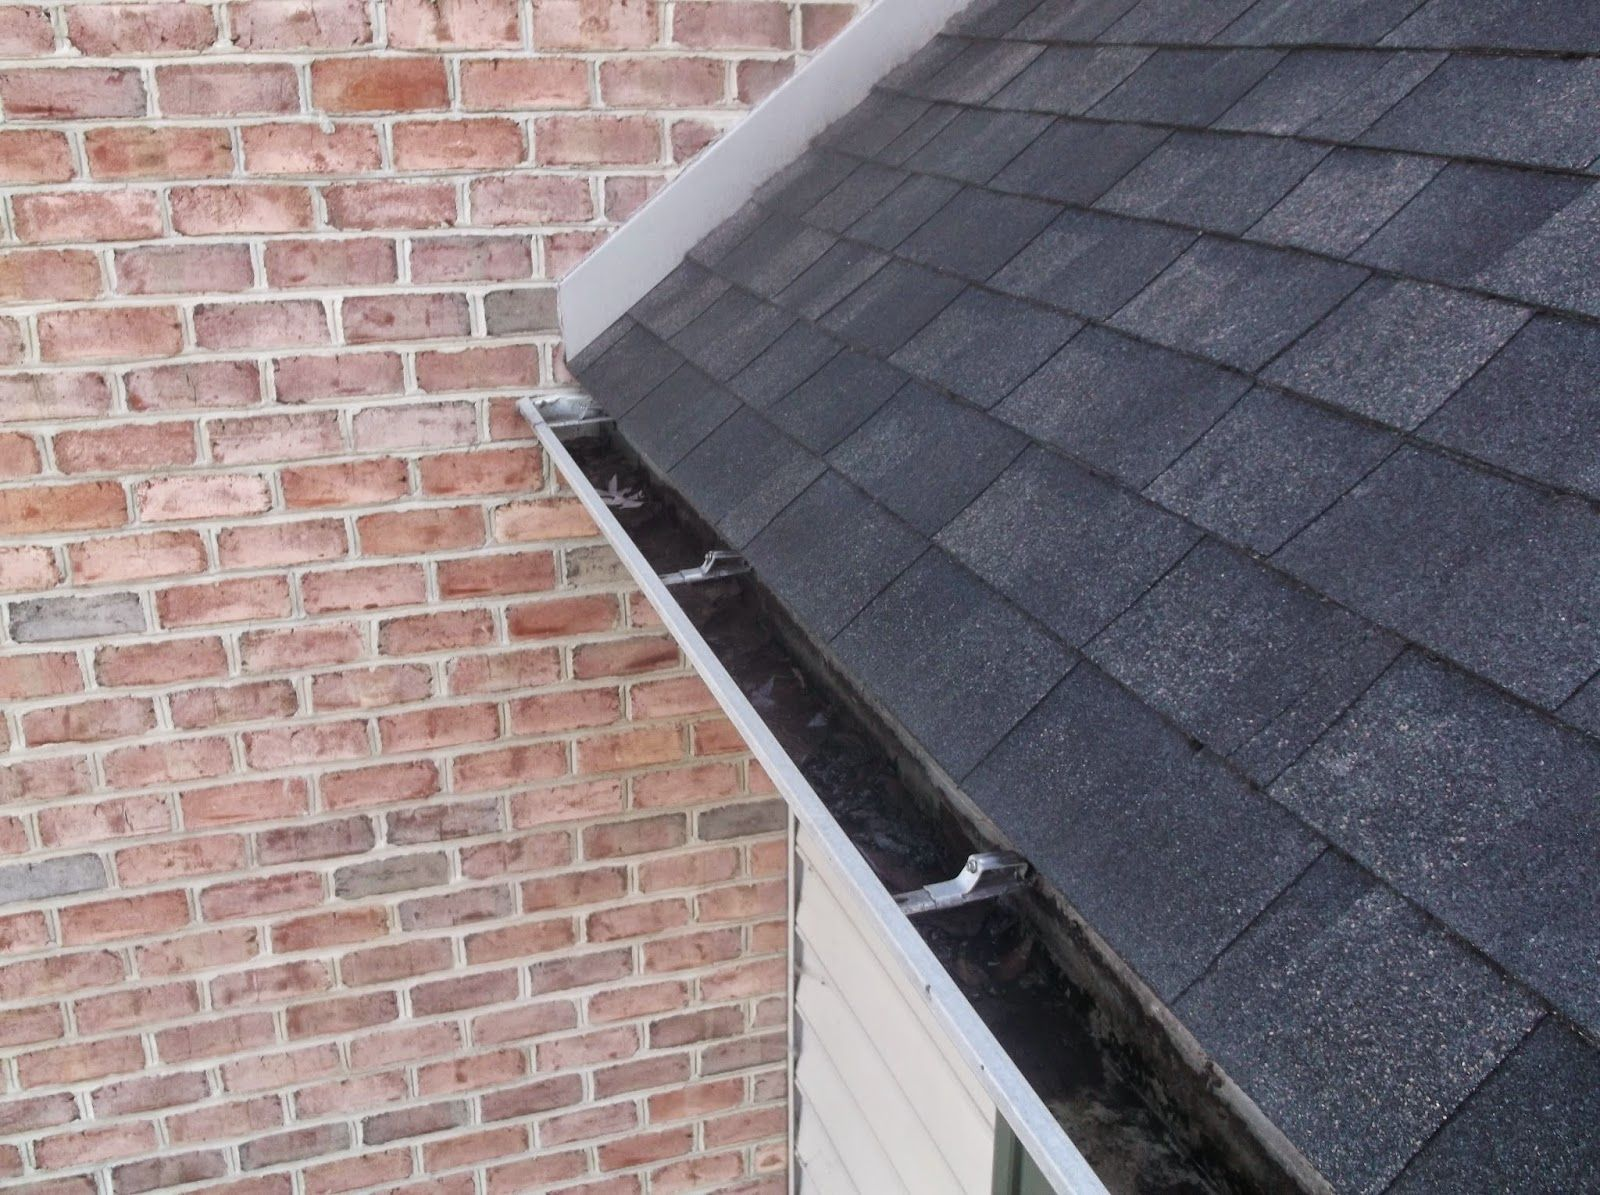 Gutter cleaning lancaster pa cleaning clogged gutters in